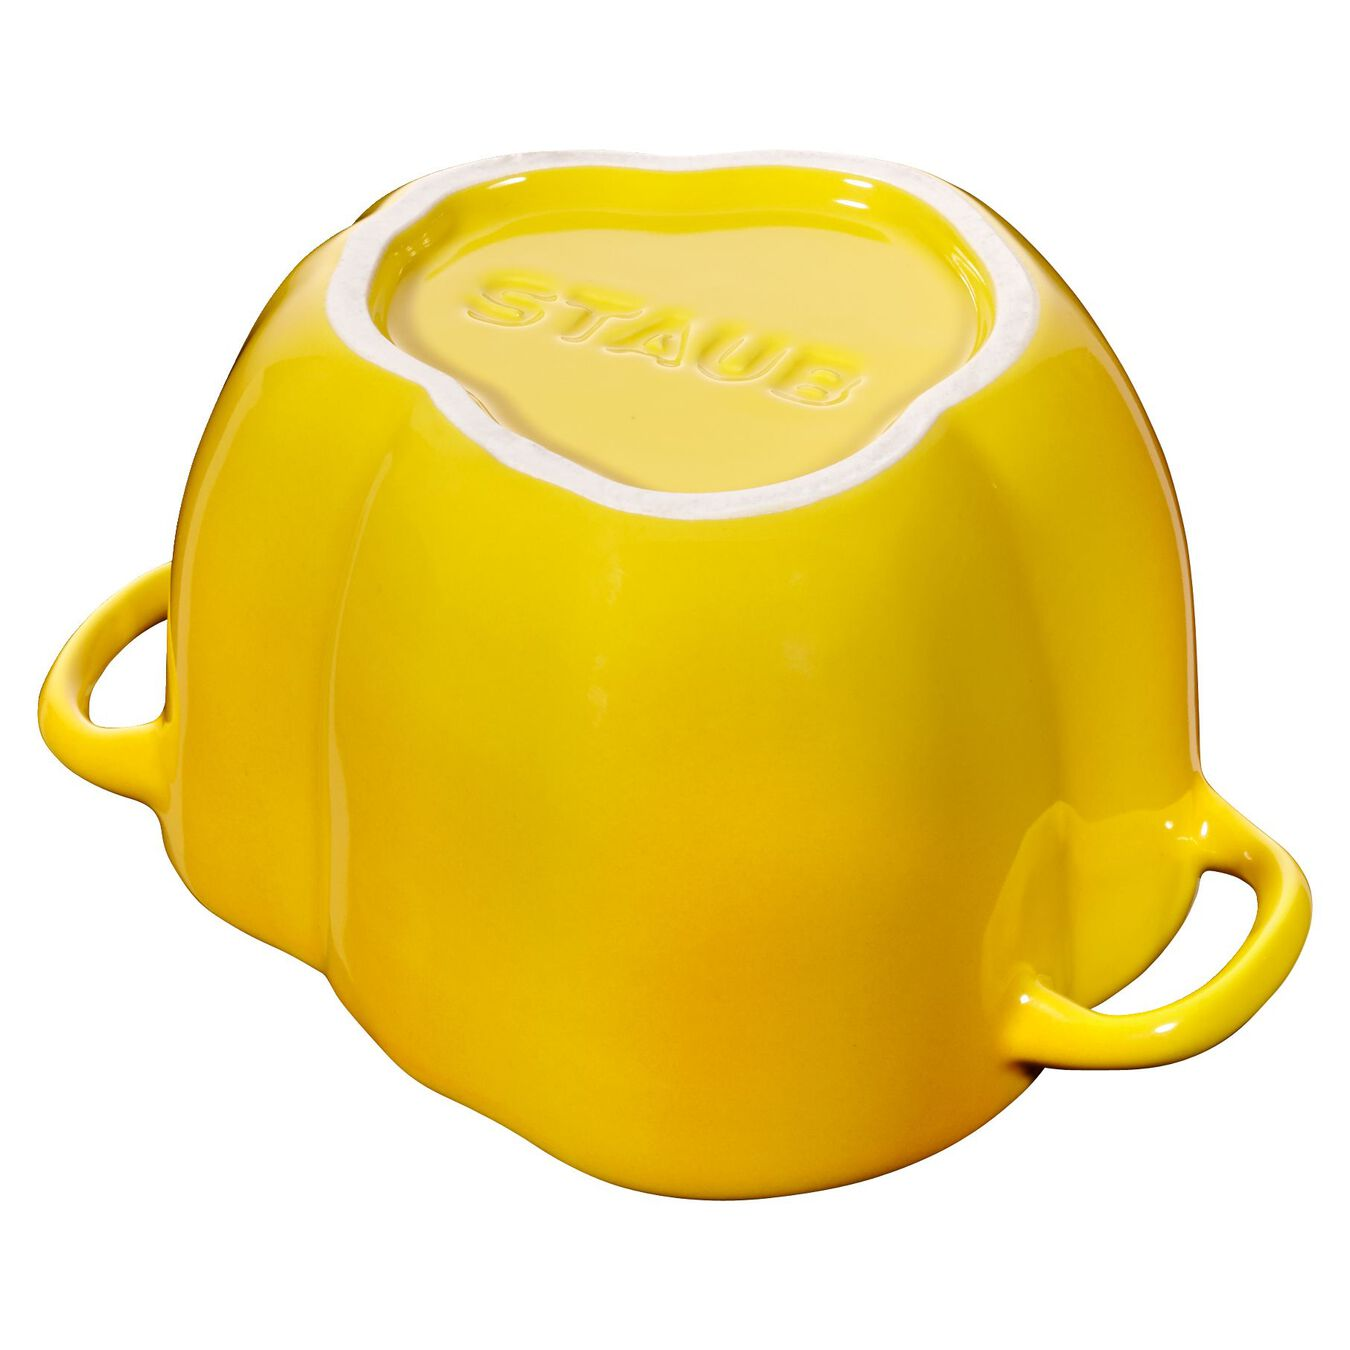 450 ml Ceramic pepper Cocotte, yellow,,large 3